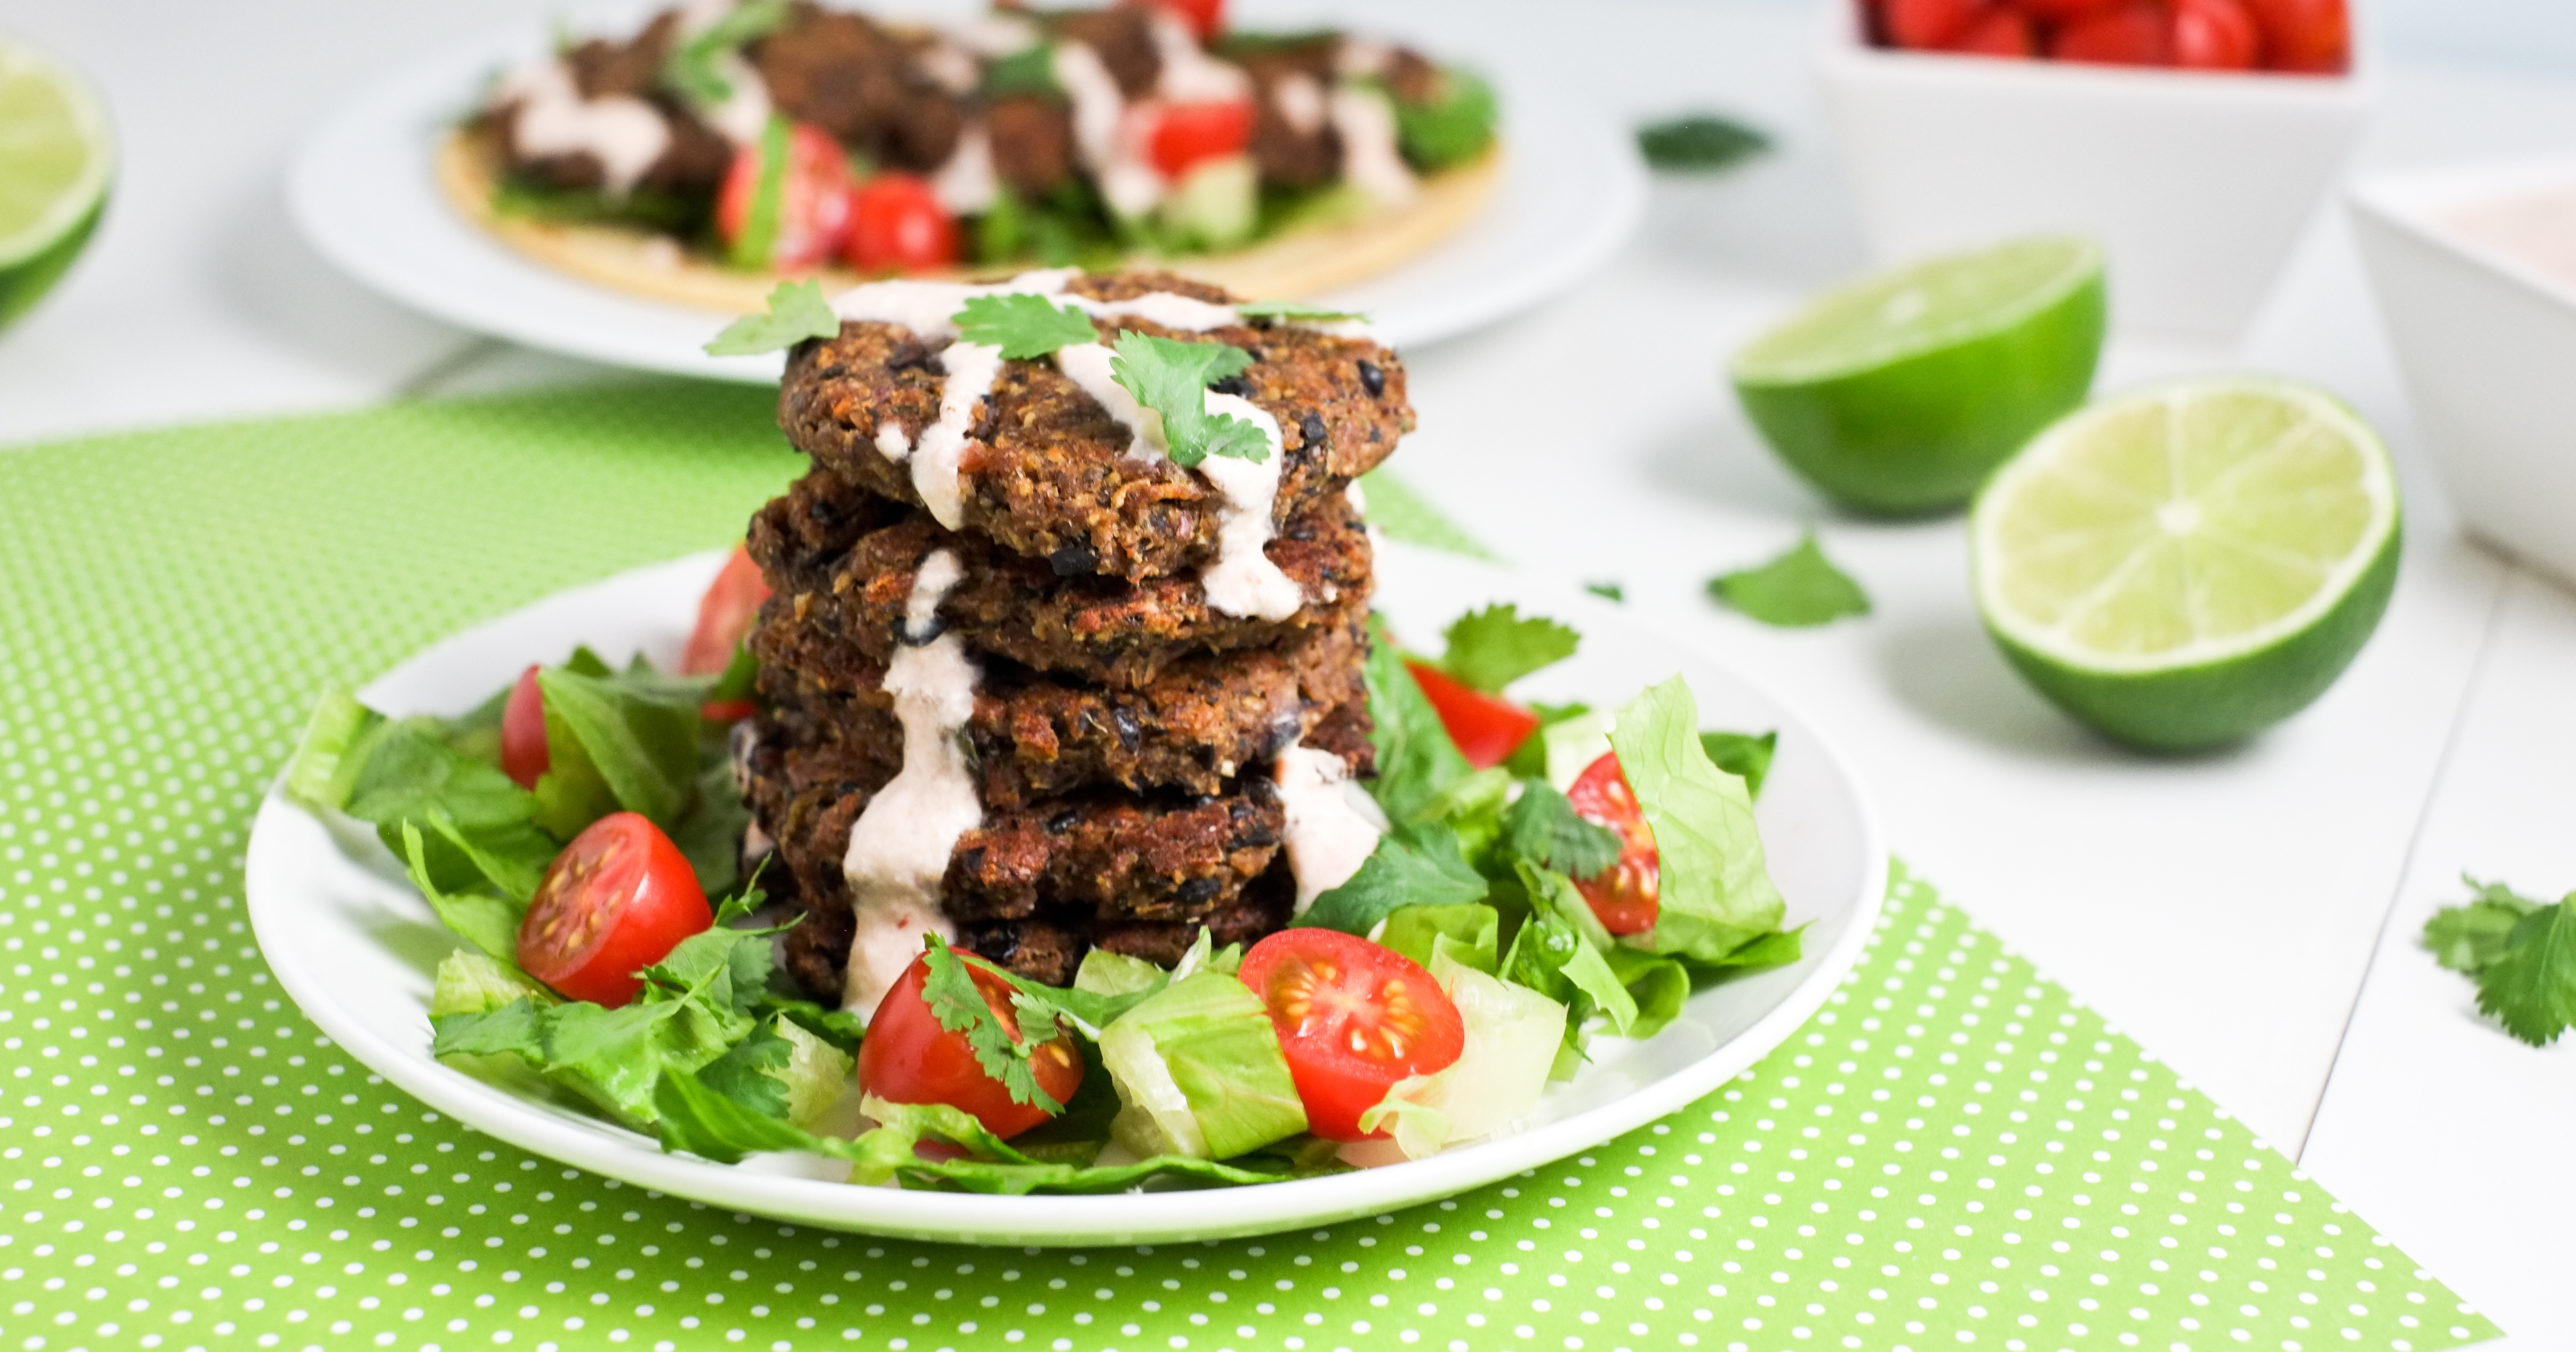 Mexican Falafel Recipe | Healthy Ideas for Kids